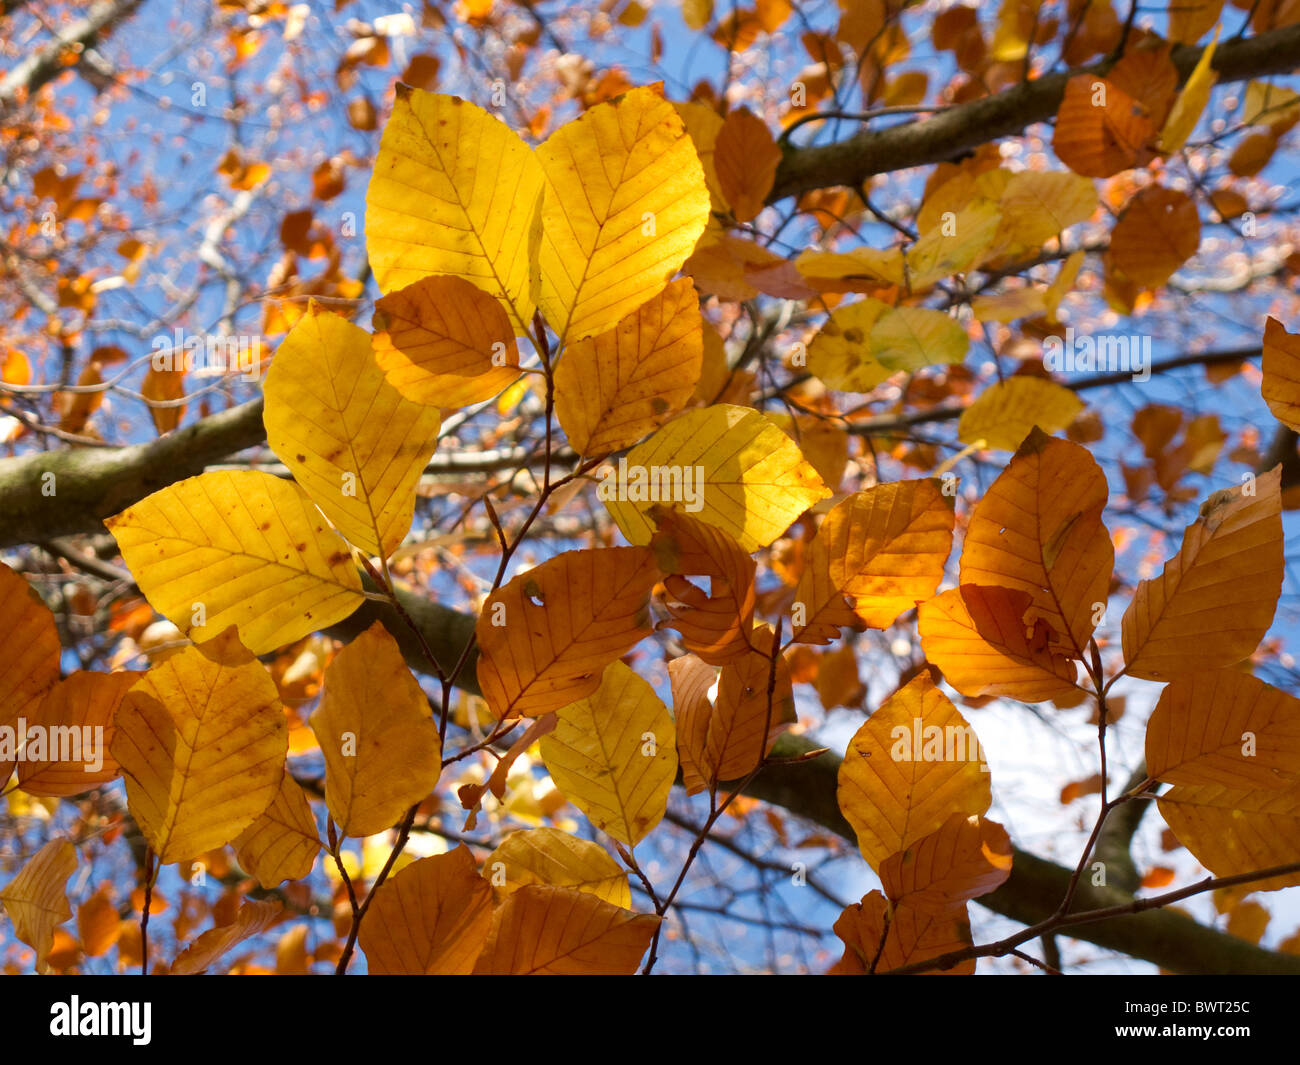 The sun shines trough beech leaves showing their Autumn colour - Stock Image